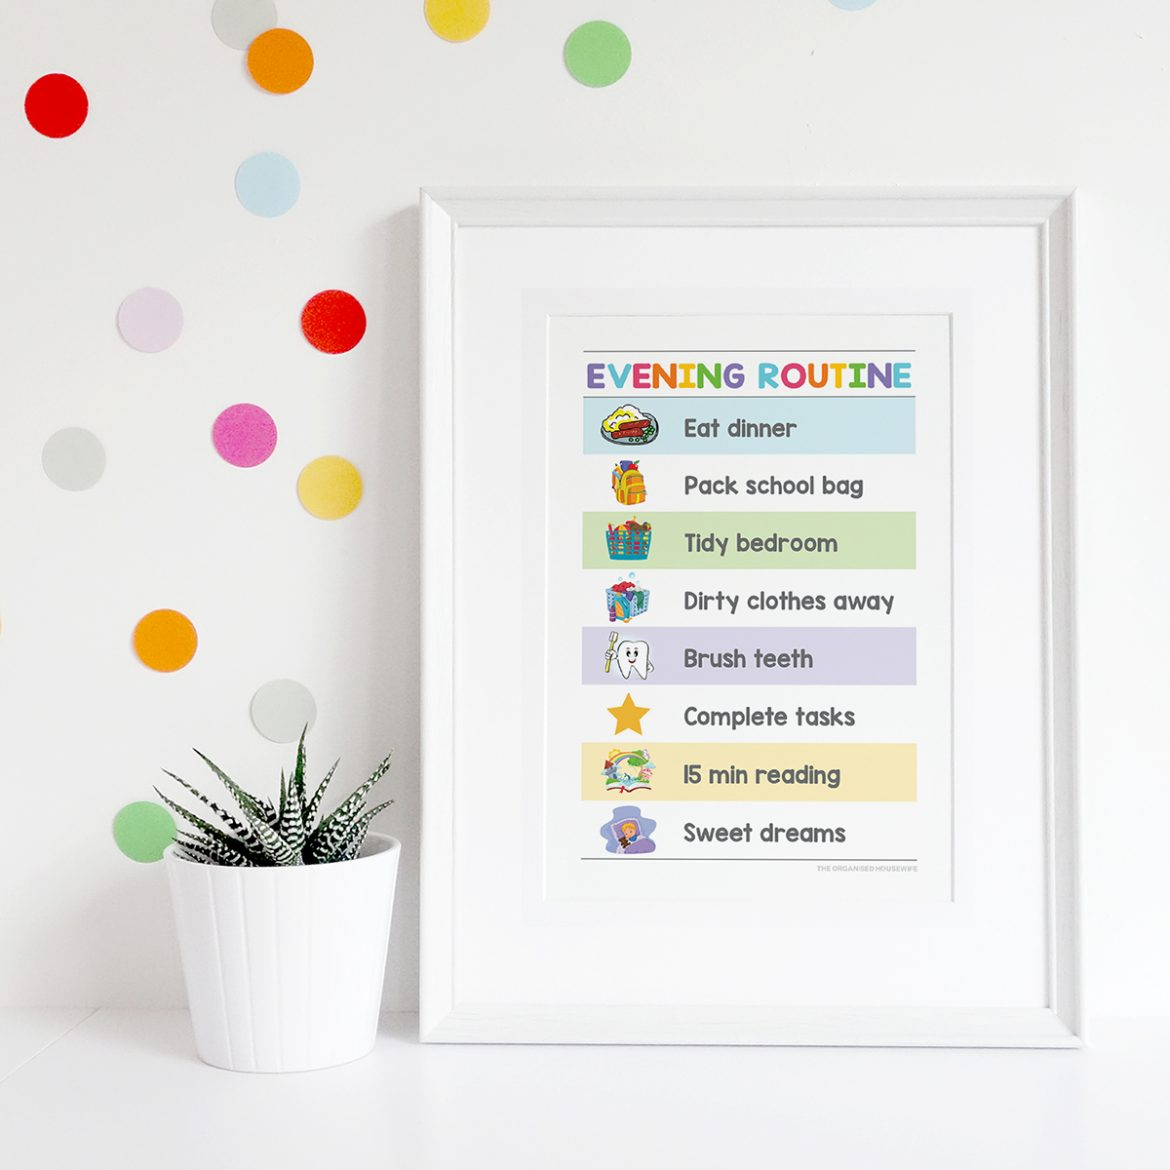 My routine charts will help your child to independently get ready for school, stop you repeating yourself and remind them of tasks that need to be completed before they can play or turn on the TV, creating a chaos-free day before and after school.